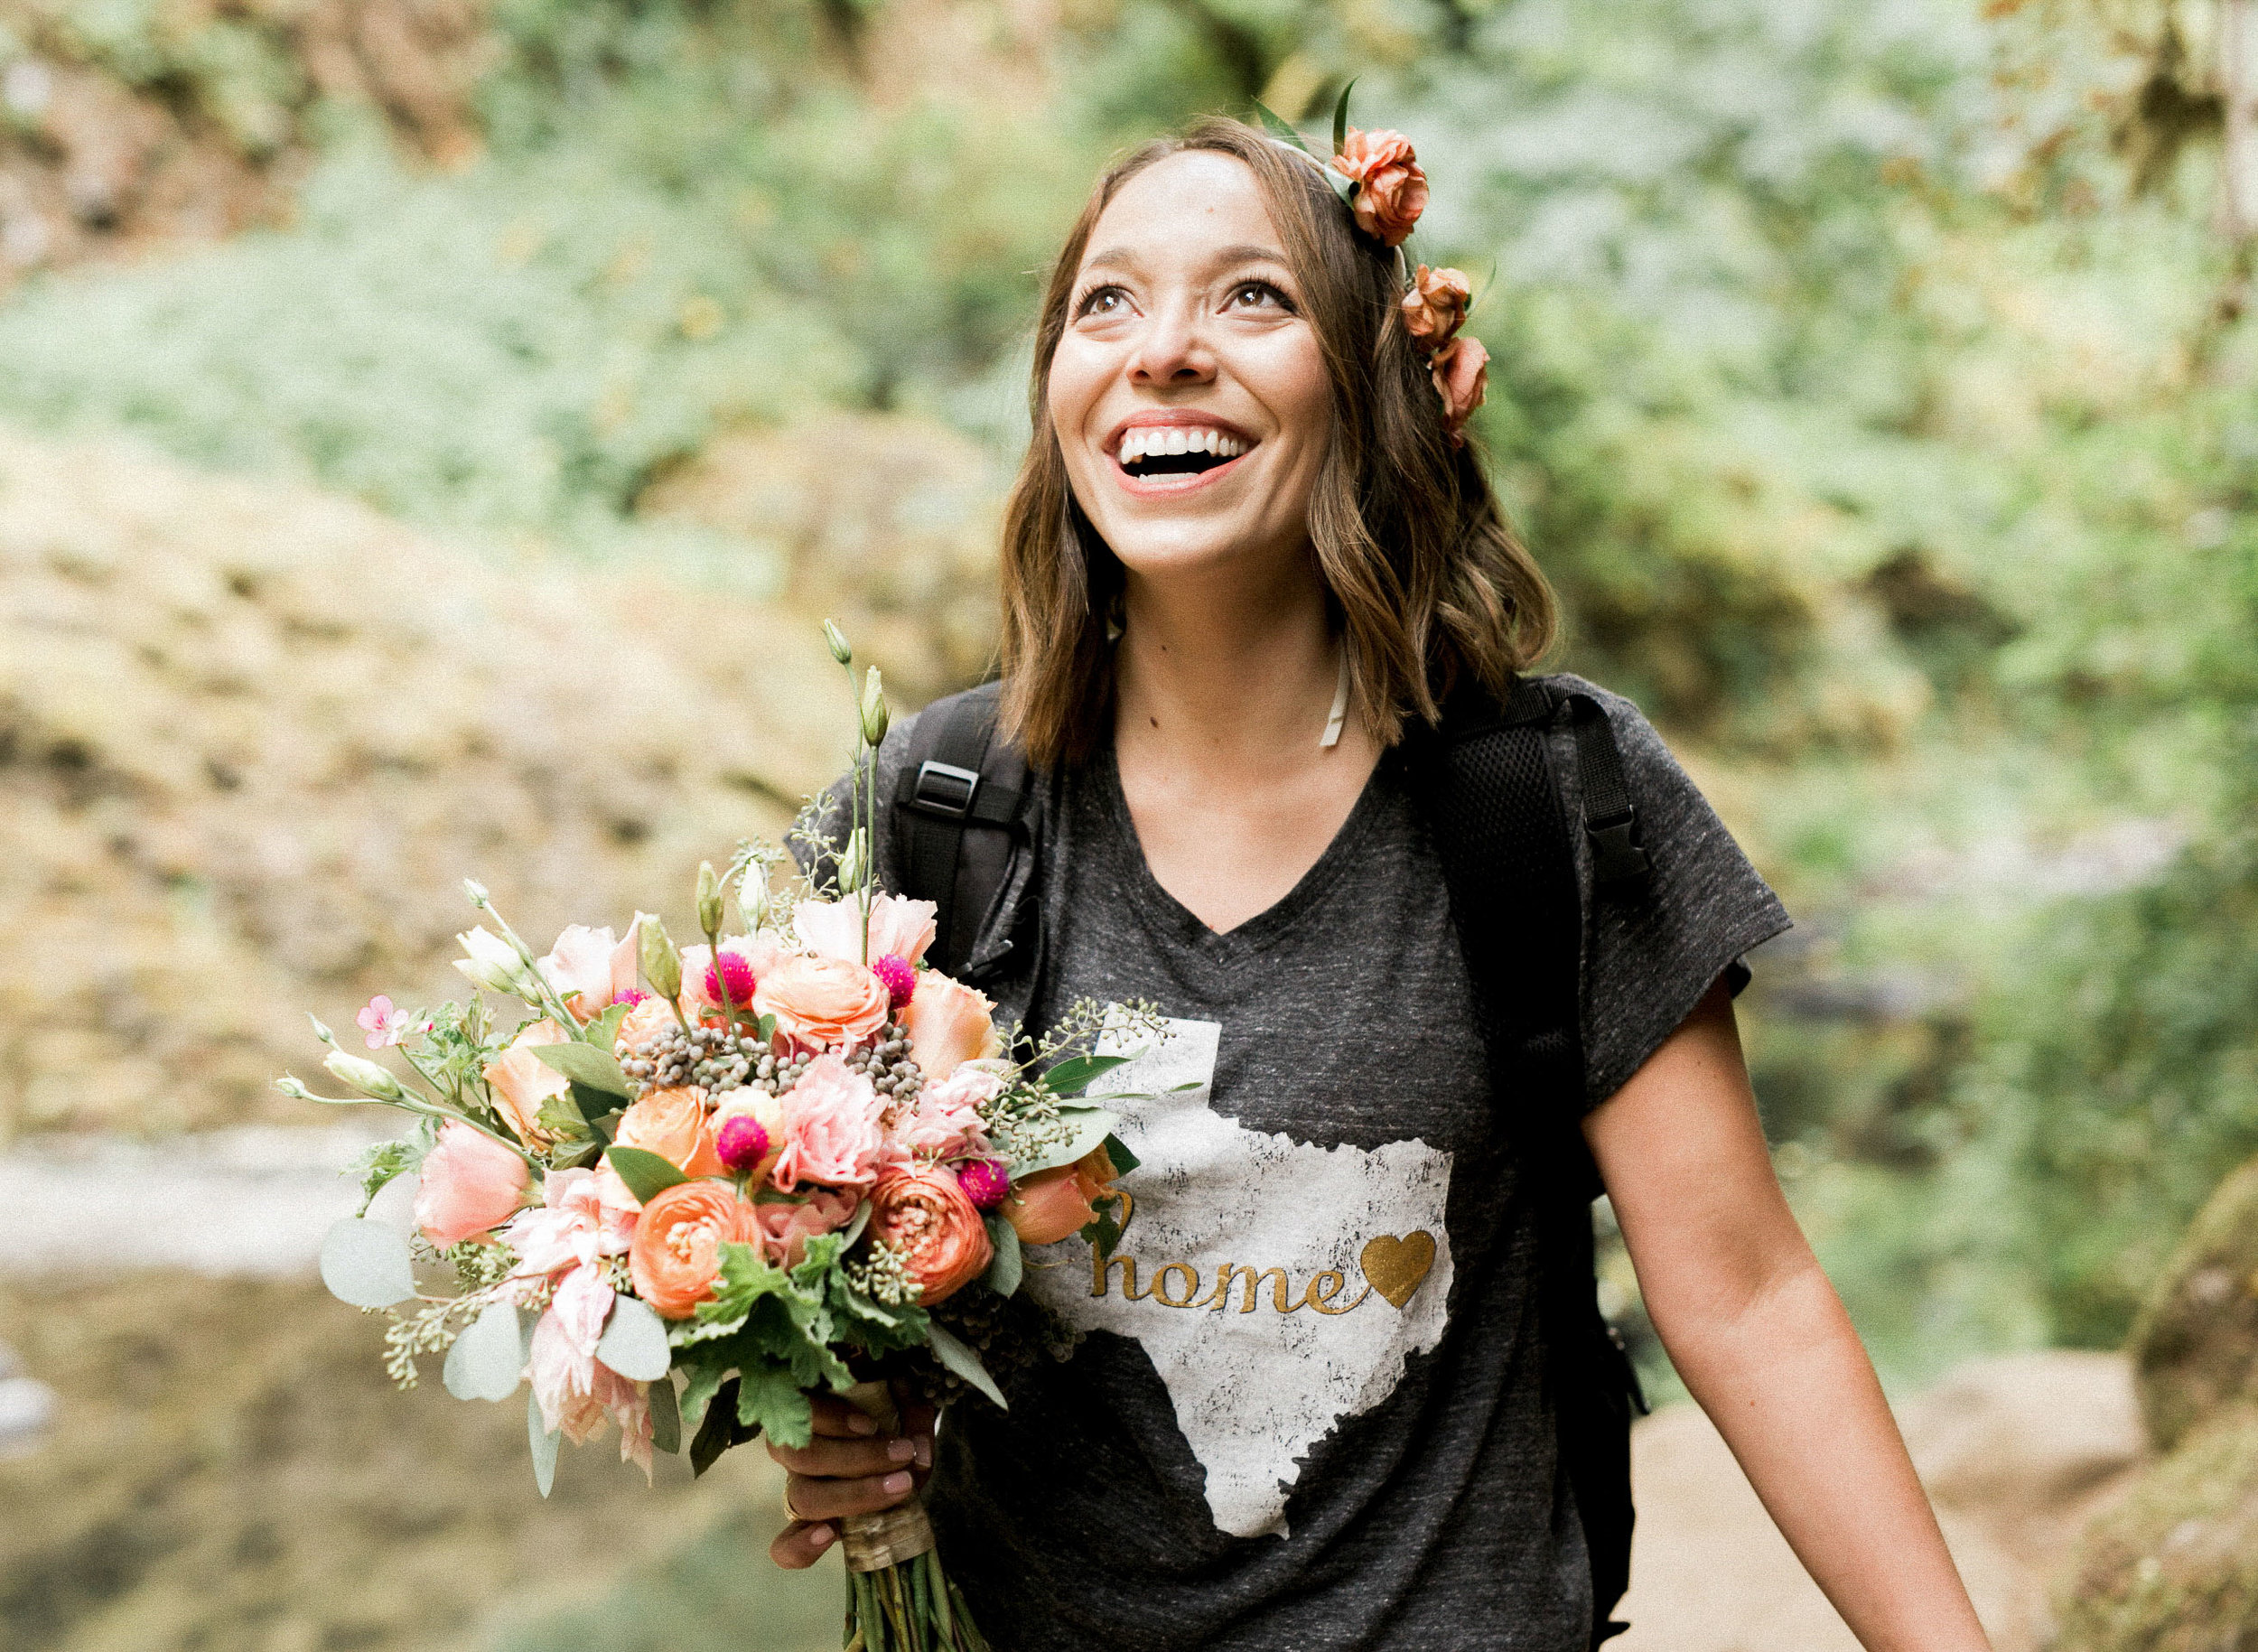 abiqua_falls_elopement_wedding_oregon_photographer_videographer_042.jpg